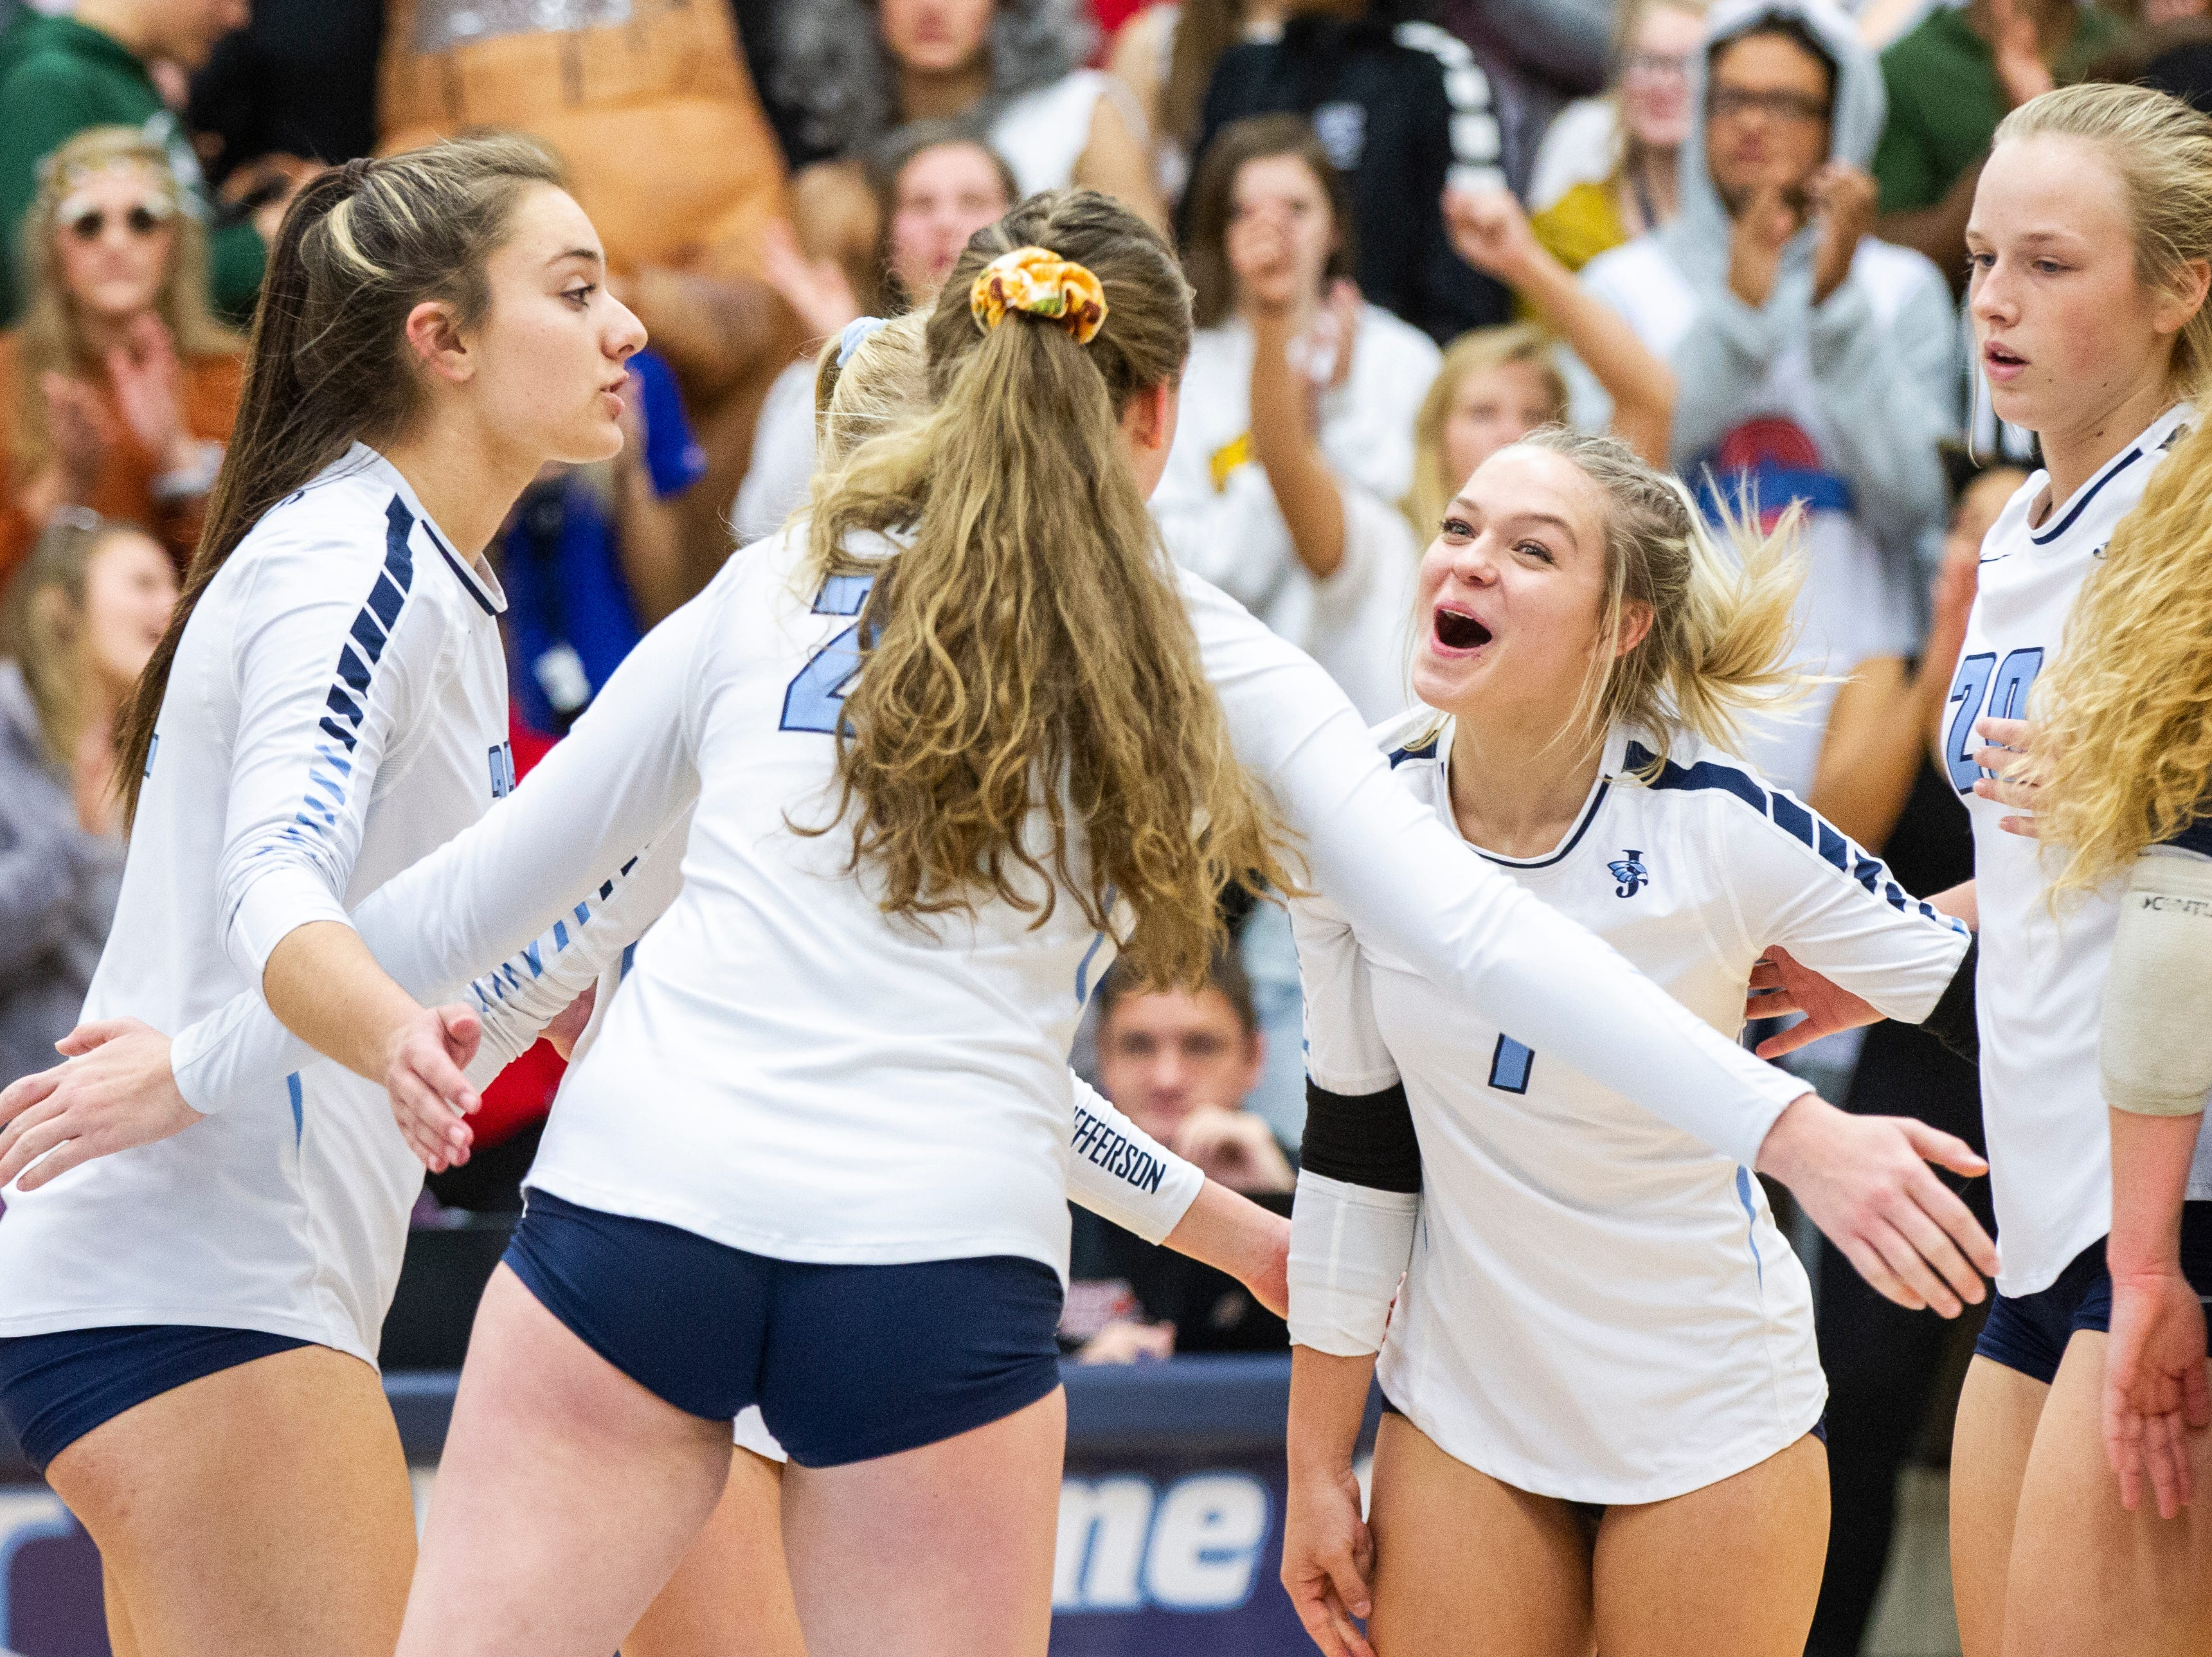 Cedar Rapids Jefferson's Maggie Peters (18) Maddy Baxter (3) Kaylee Donner (10) Sydney Kloubec (21) and Allie Krousie (7) celebrate a point during a Class 5A volleyball regional final game on Monday, Oct. 29, 2018, at Jefferson High School in Cedar Rapids.